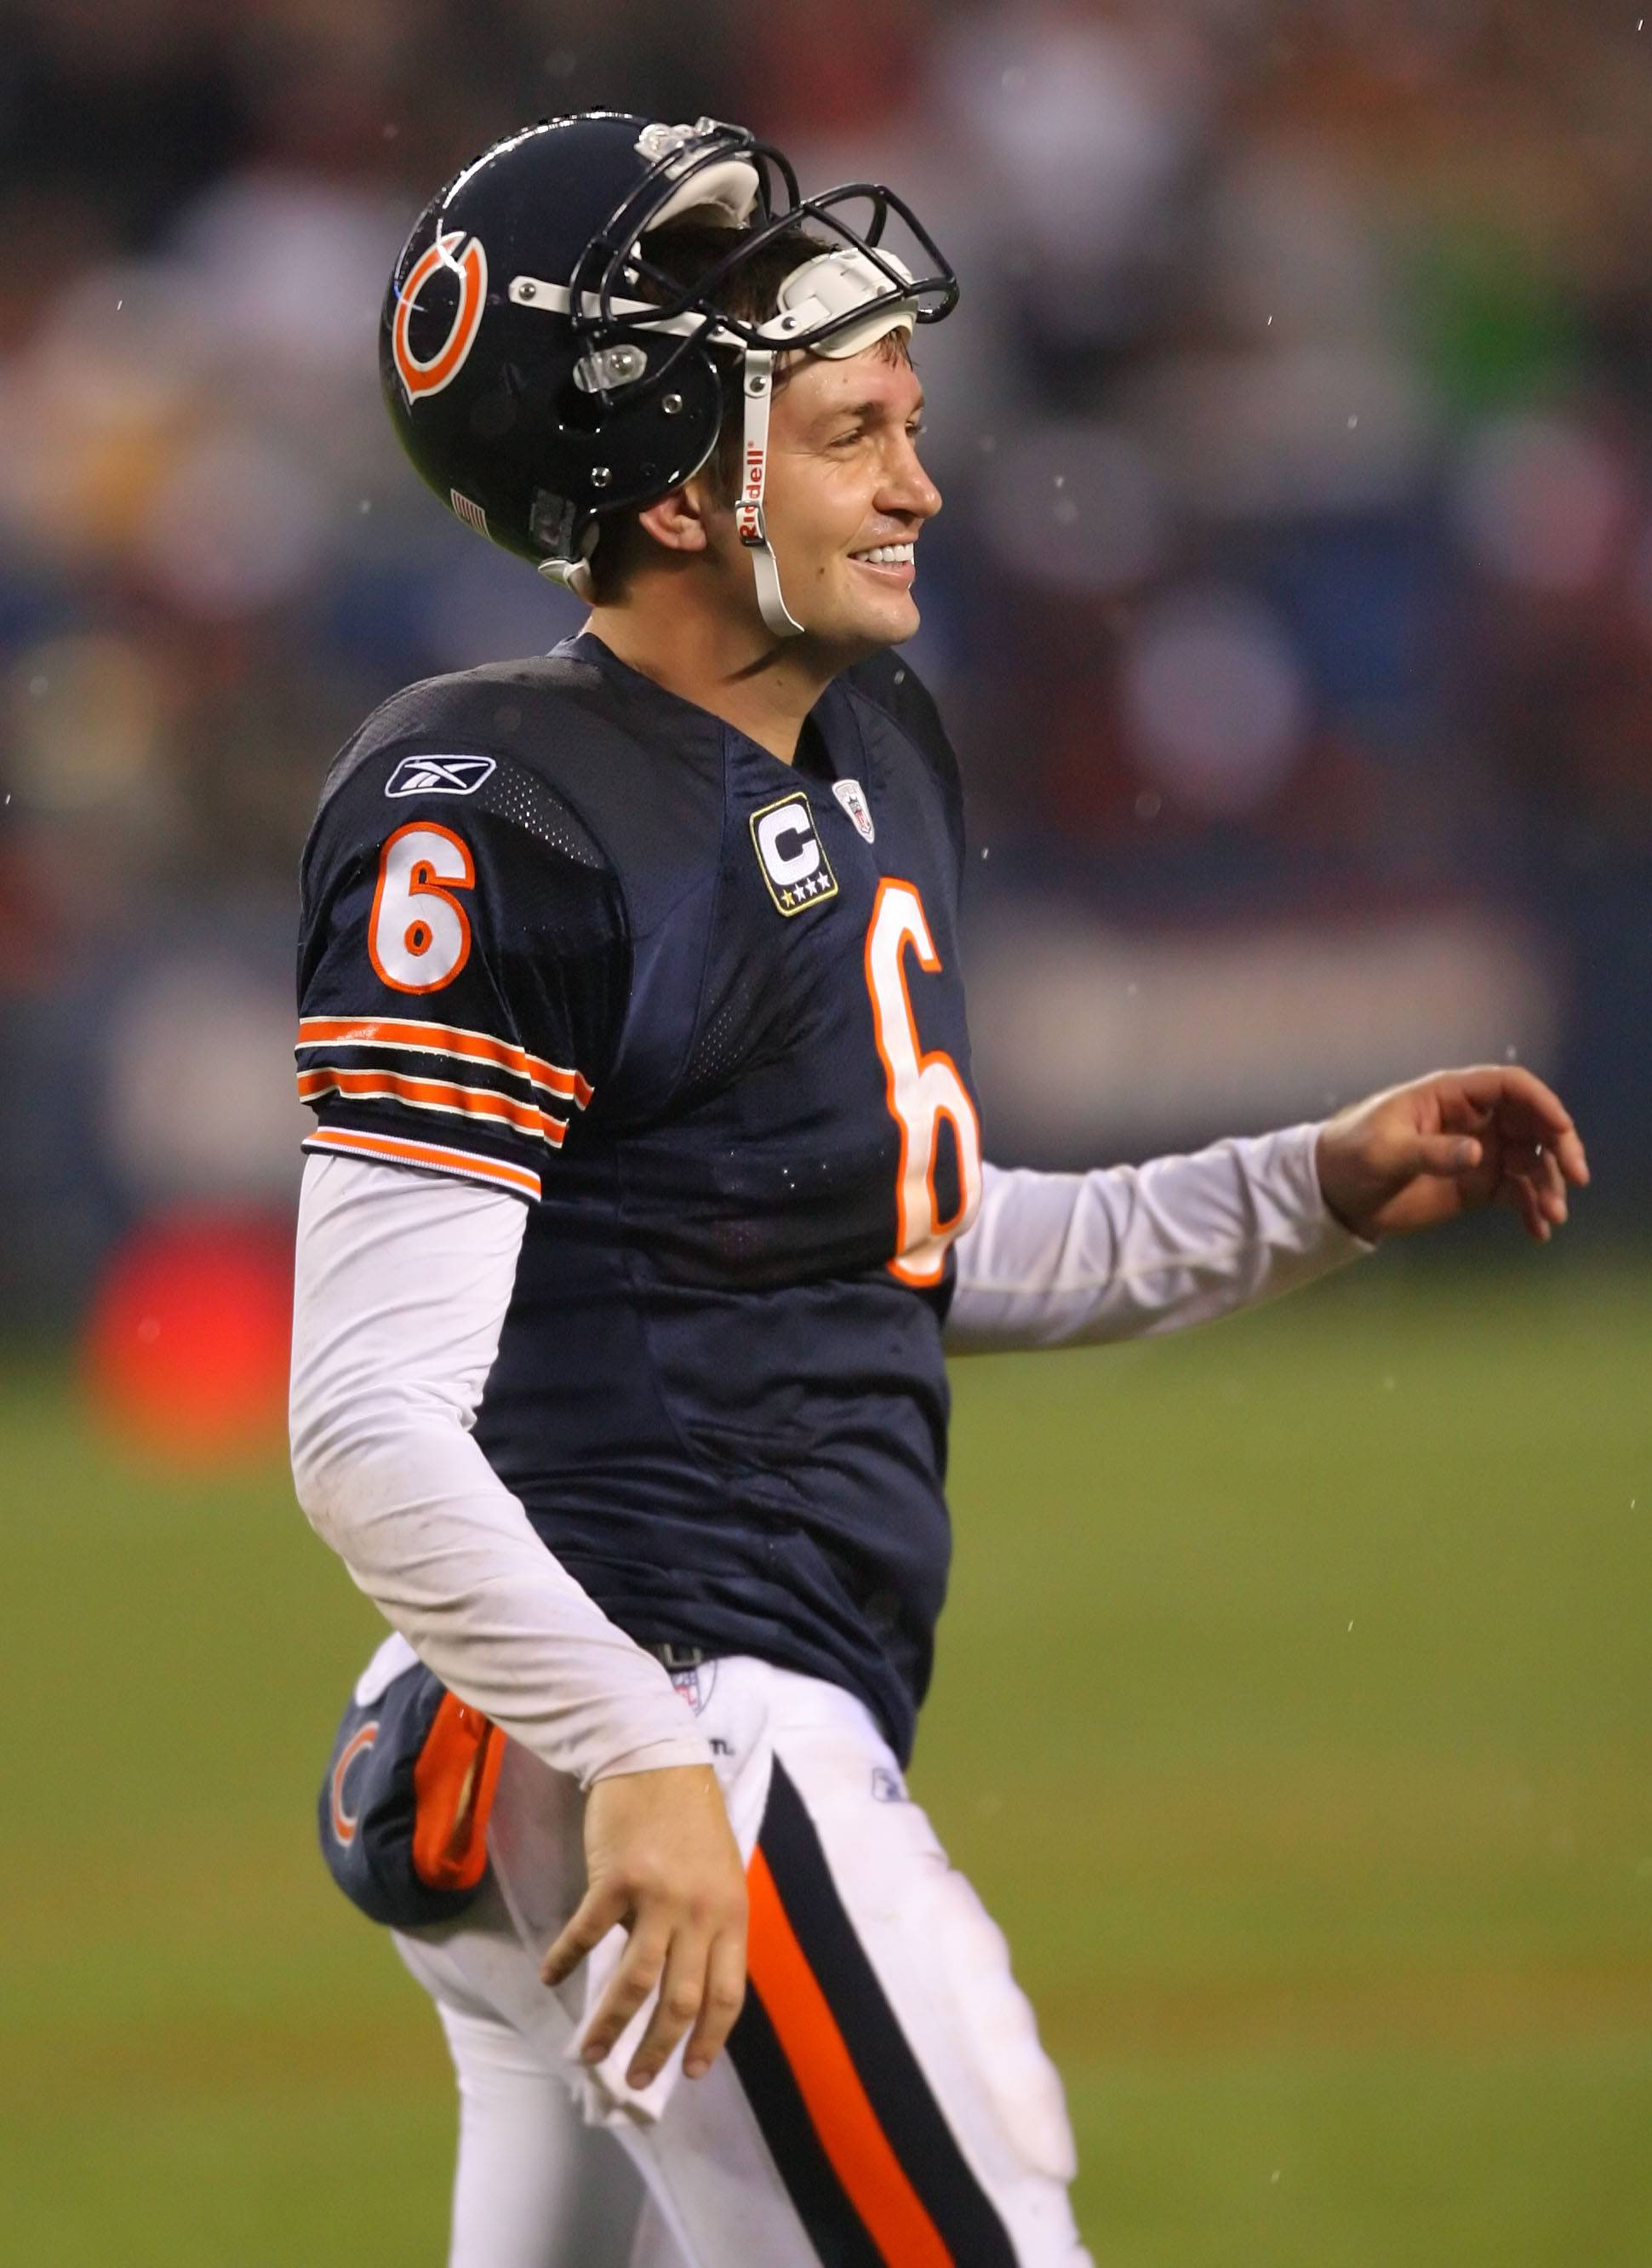 The opening of Bears camp just wouldn't be the same without talk of how Jay Cutler will perform.